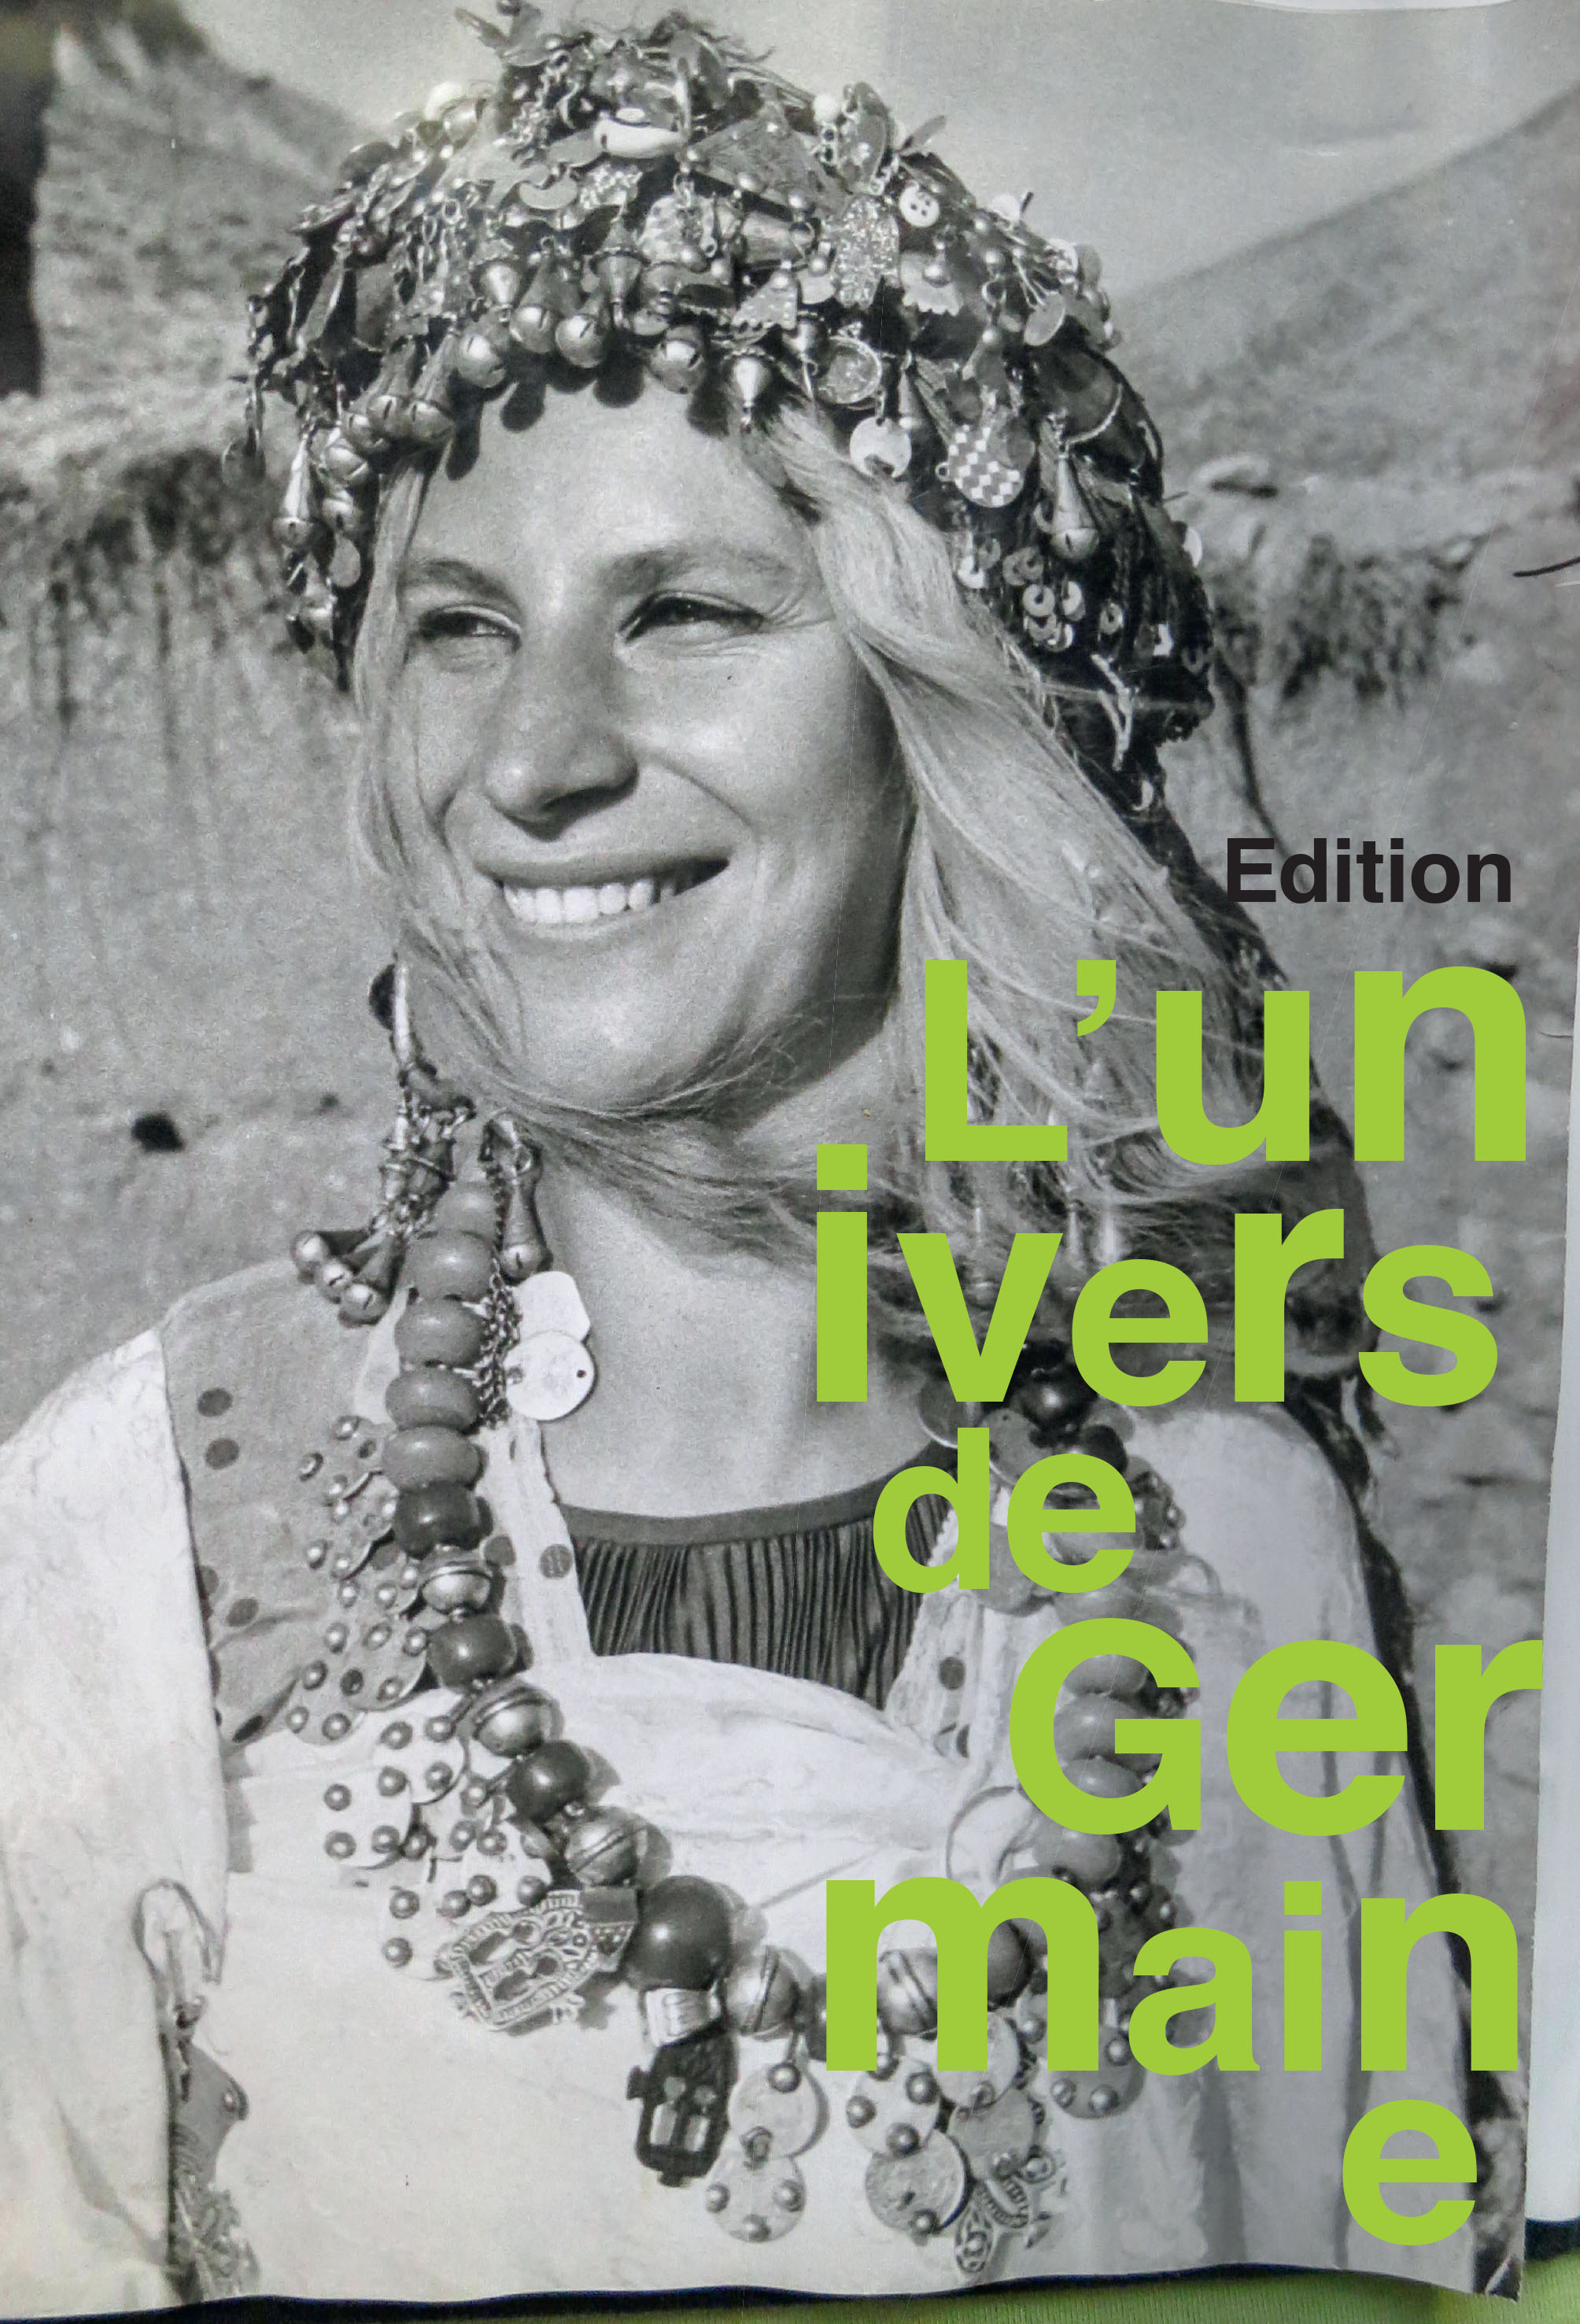 Cover Hörbuchedition Germaine.jpg